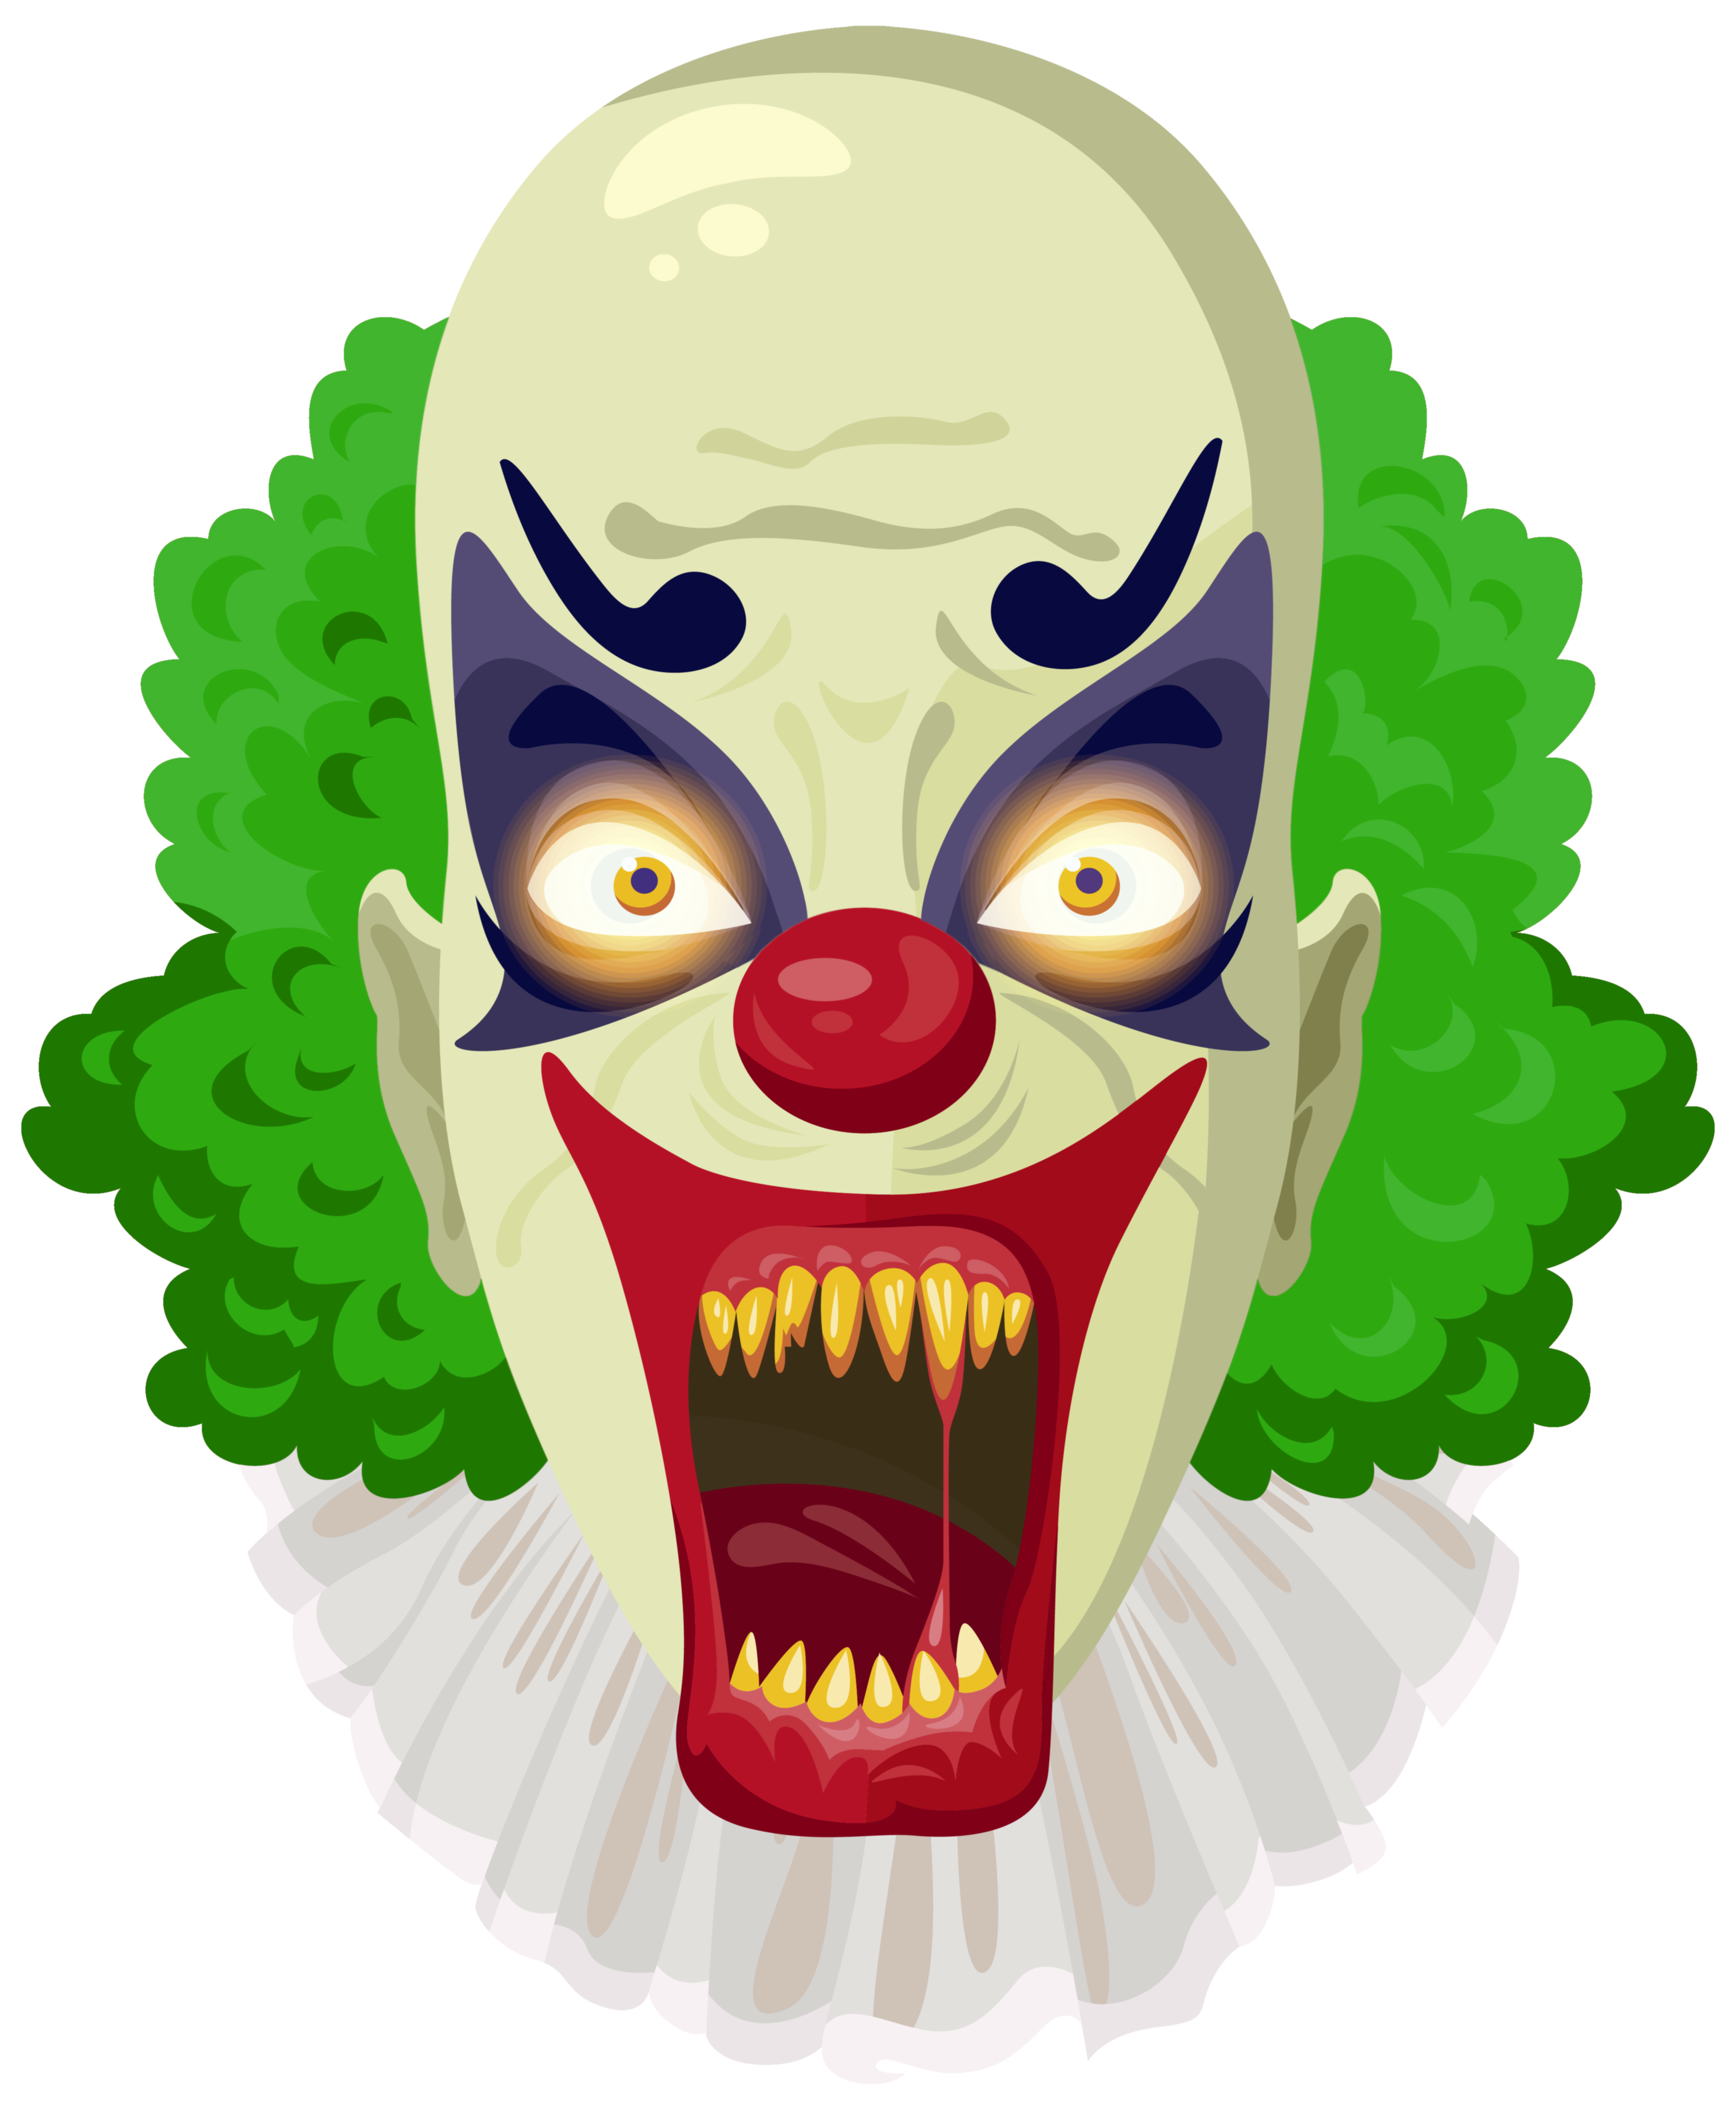 Clown clipart green. Scary png image gallery